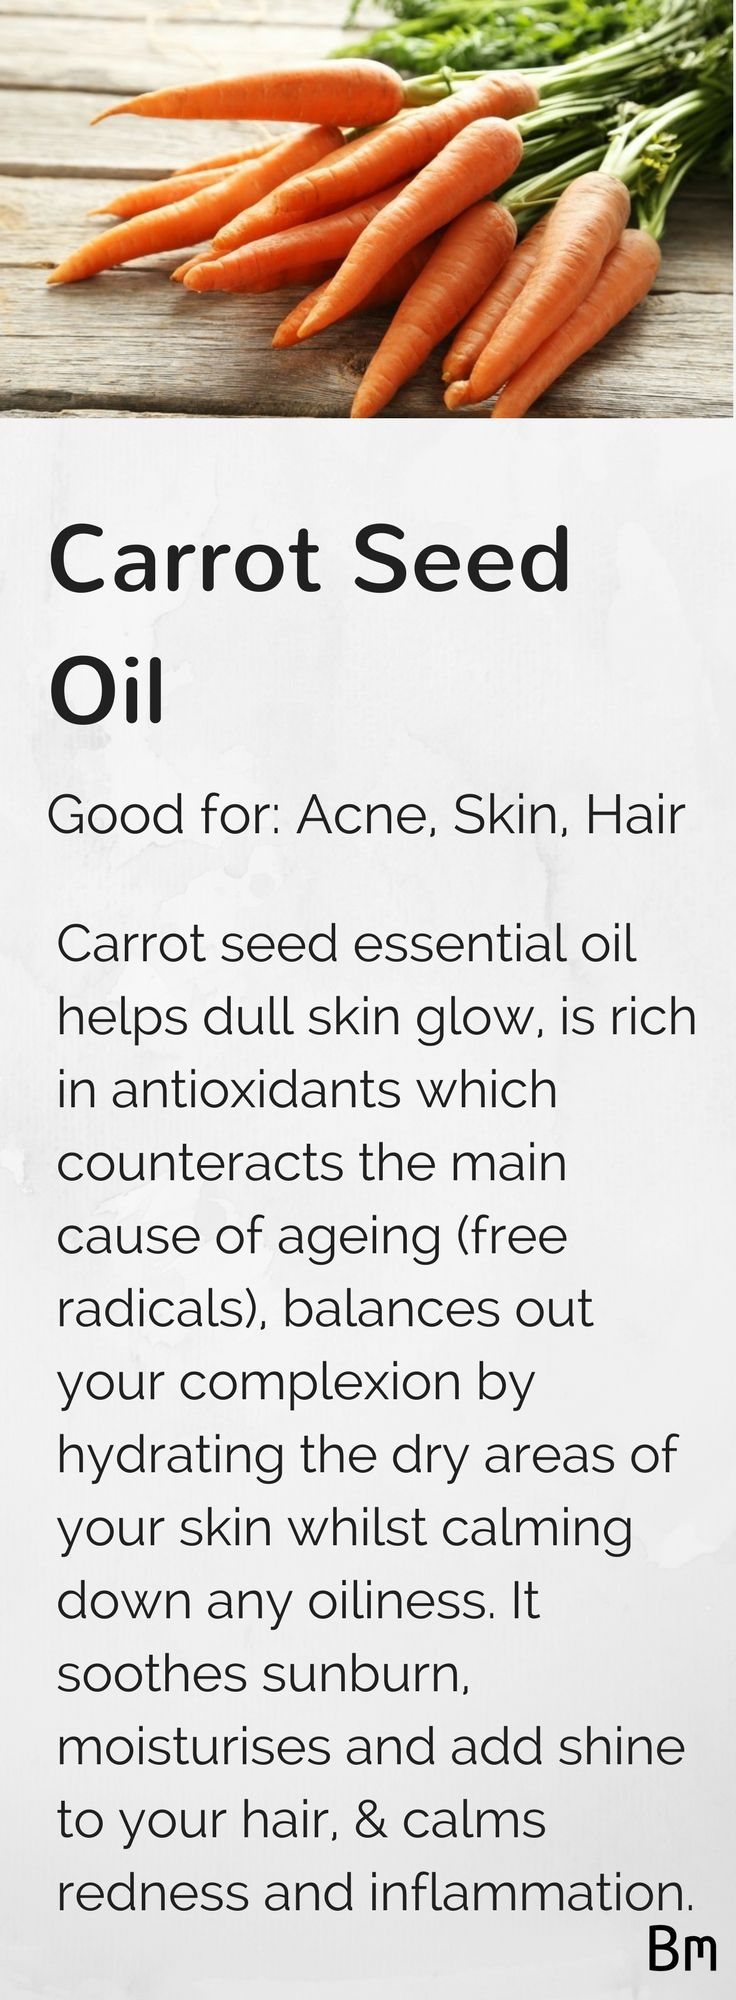 Carrot seed oil helps dull skin glow, prevents ageing, balances out your complexion, soothes sunburn and adds shine to your hair. Just add a few drops to your shampoo or conditioner and to your favourite body lotion! Learn more about carrot seed and other essential oils by clicking on the pin.